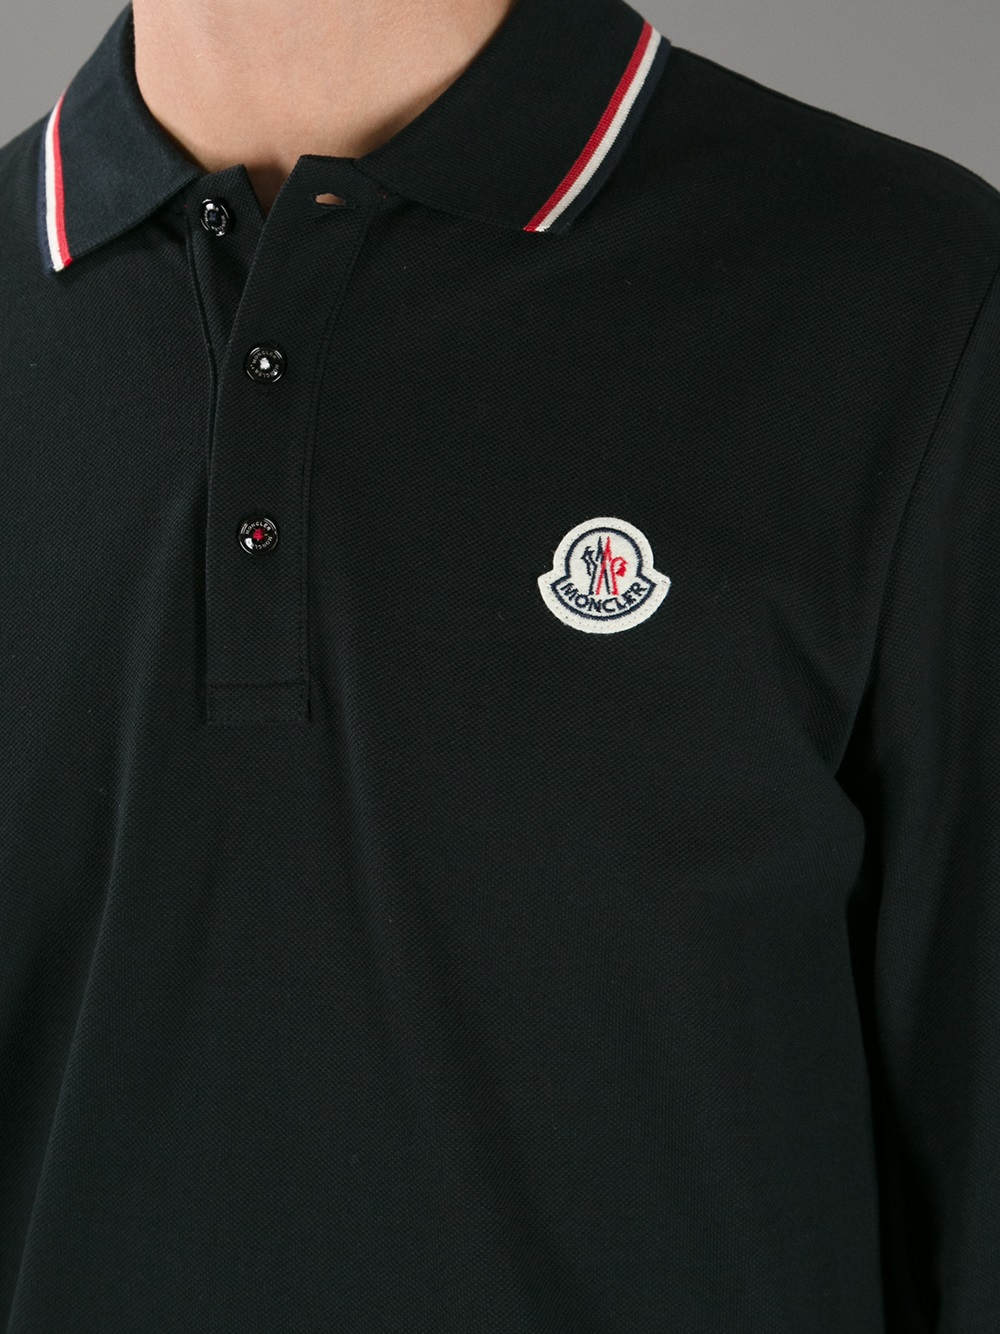 14ce3d15e852 Lyst - Moncler Long Sleeve Polo Shirt in Black for Men